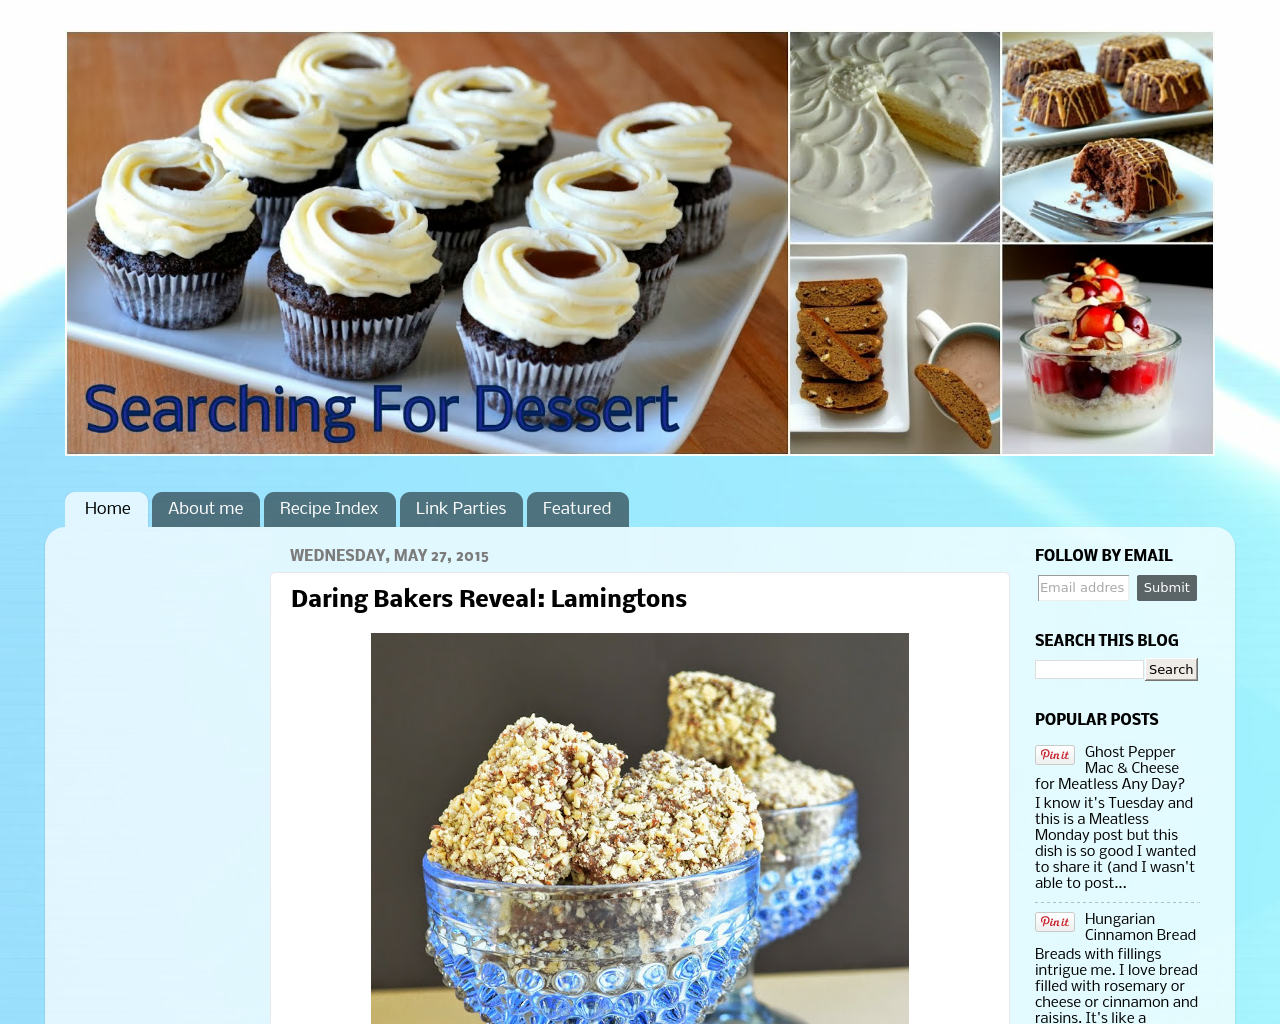 Searching-For-Dessert-Advertising-Reviews-Pricing